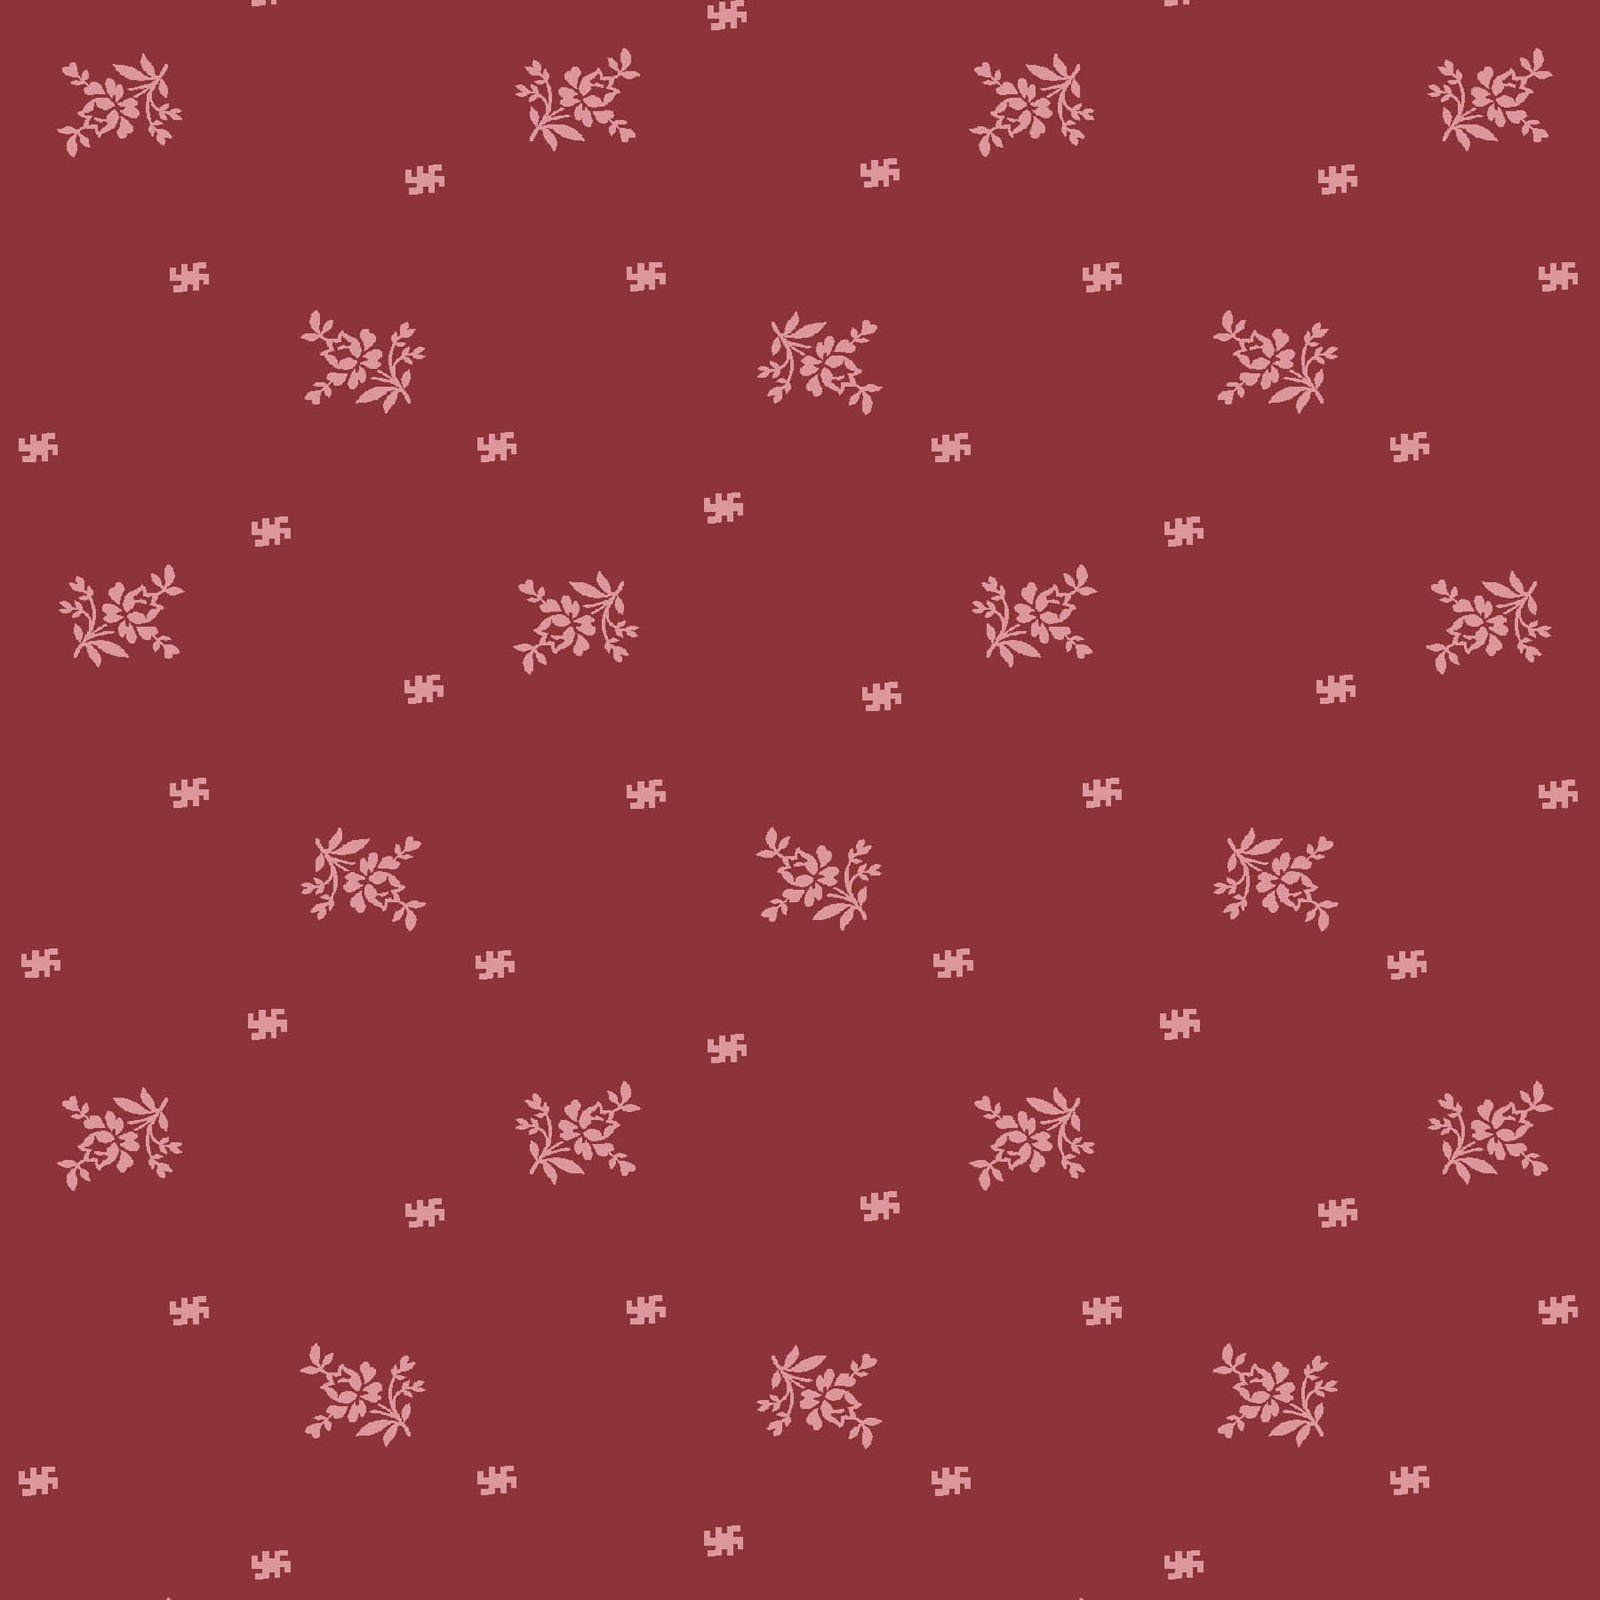 ANAS-4249 DR - ANASTASIA - RED BY P&B BOUTIQUE MONOTONE DK RED